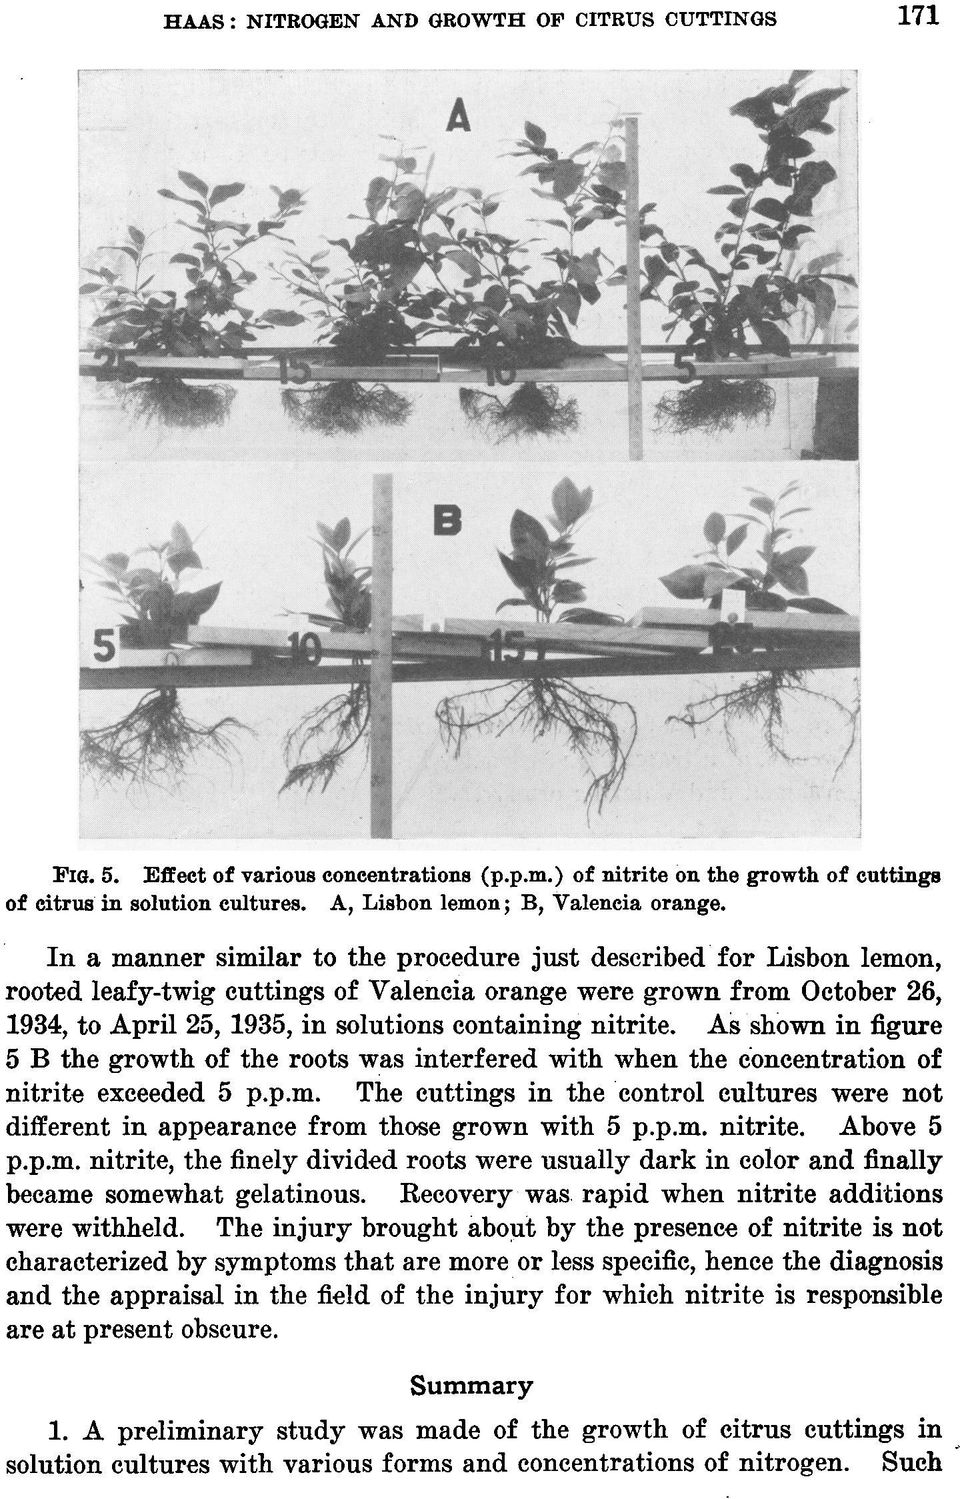 In a manner similar to the procedure just described for Lisbon lemon, rooted leafy-twig cuttings of Valeneia orange were grown from October 26, 1934, to April 25, 1935, in solutions containing